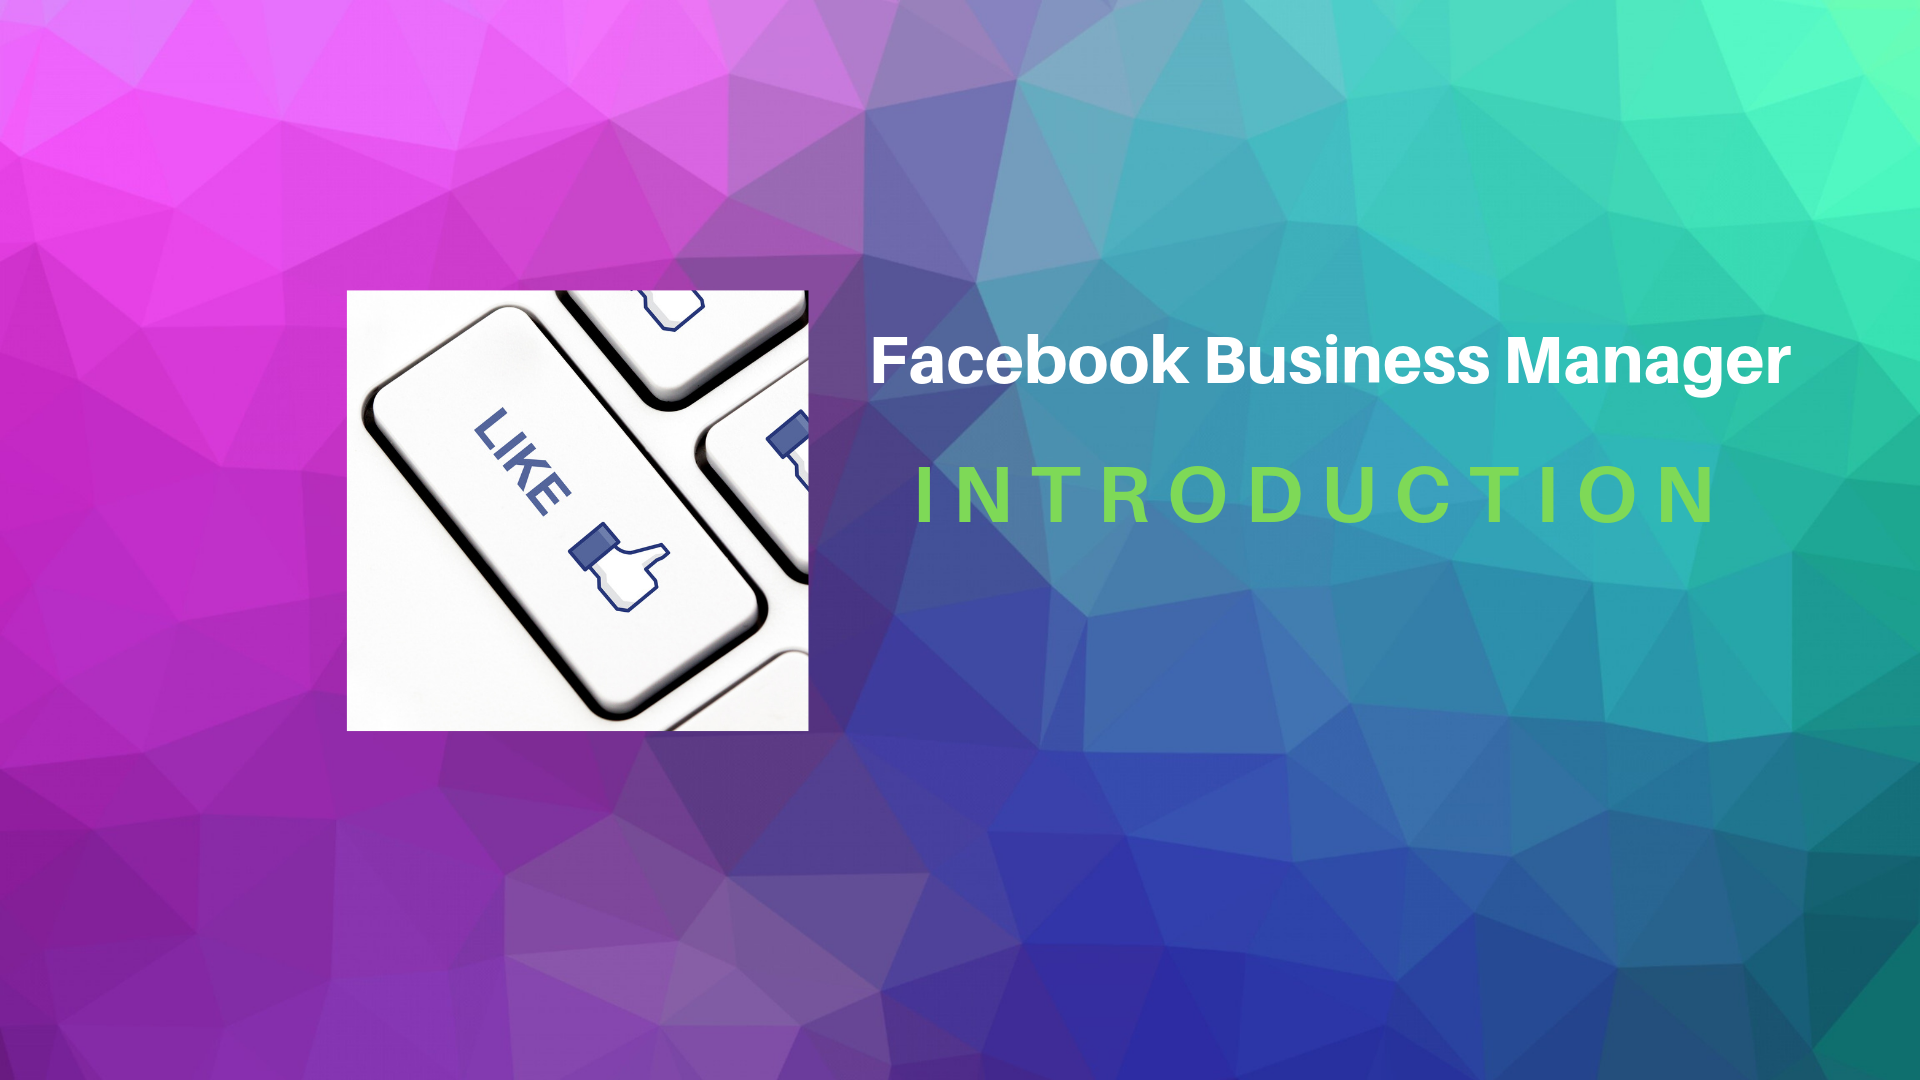 Introduction to Facebook Business Manager